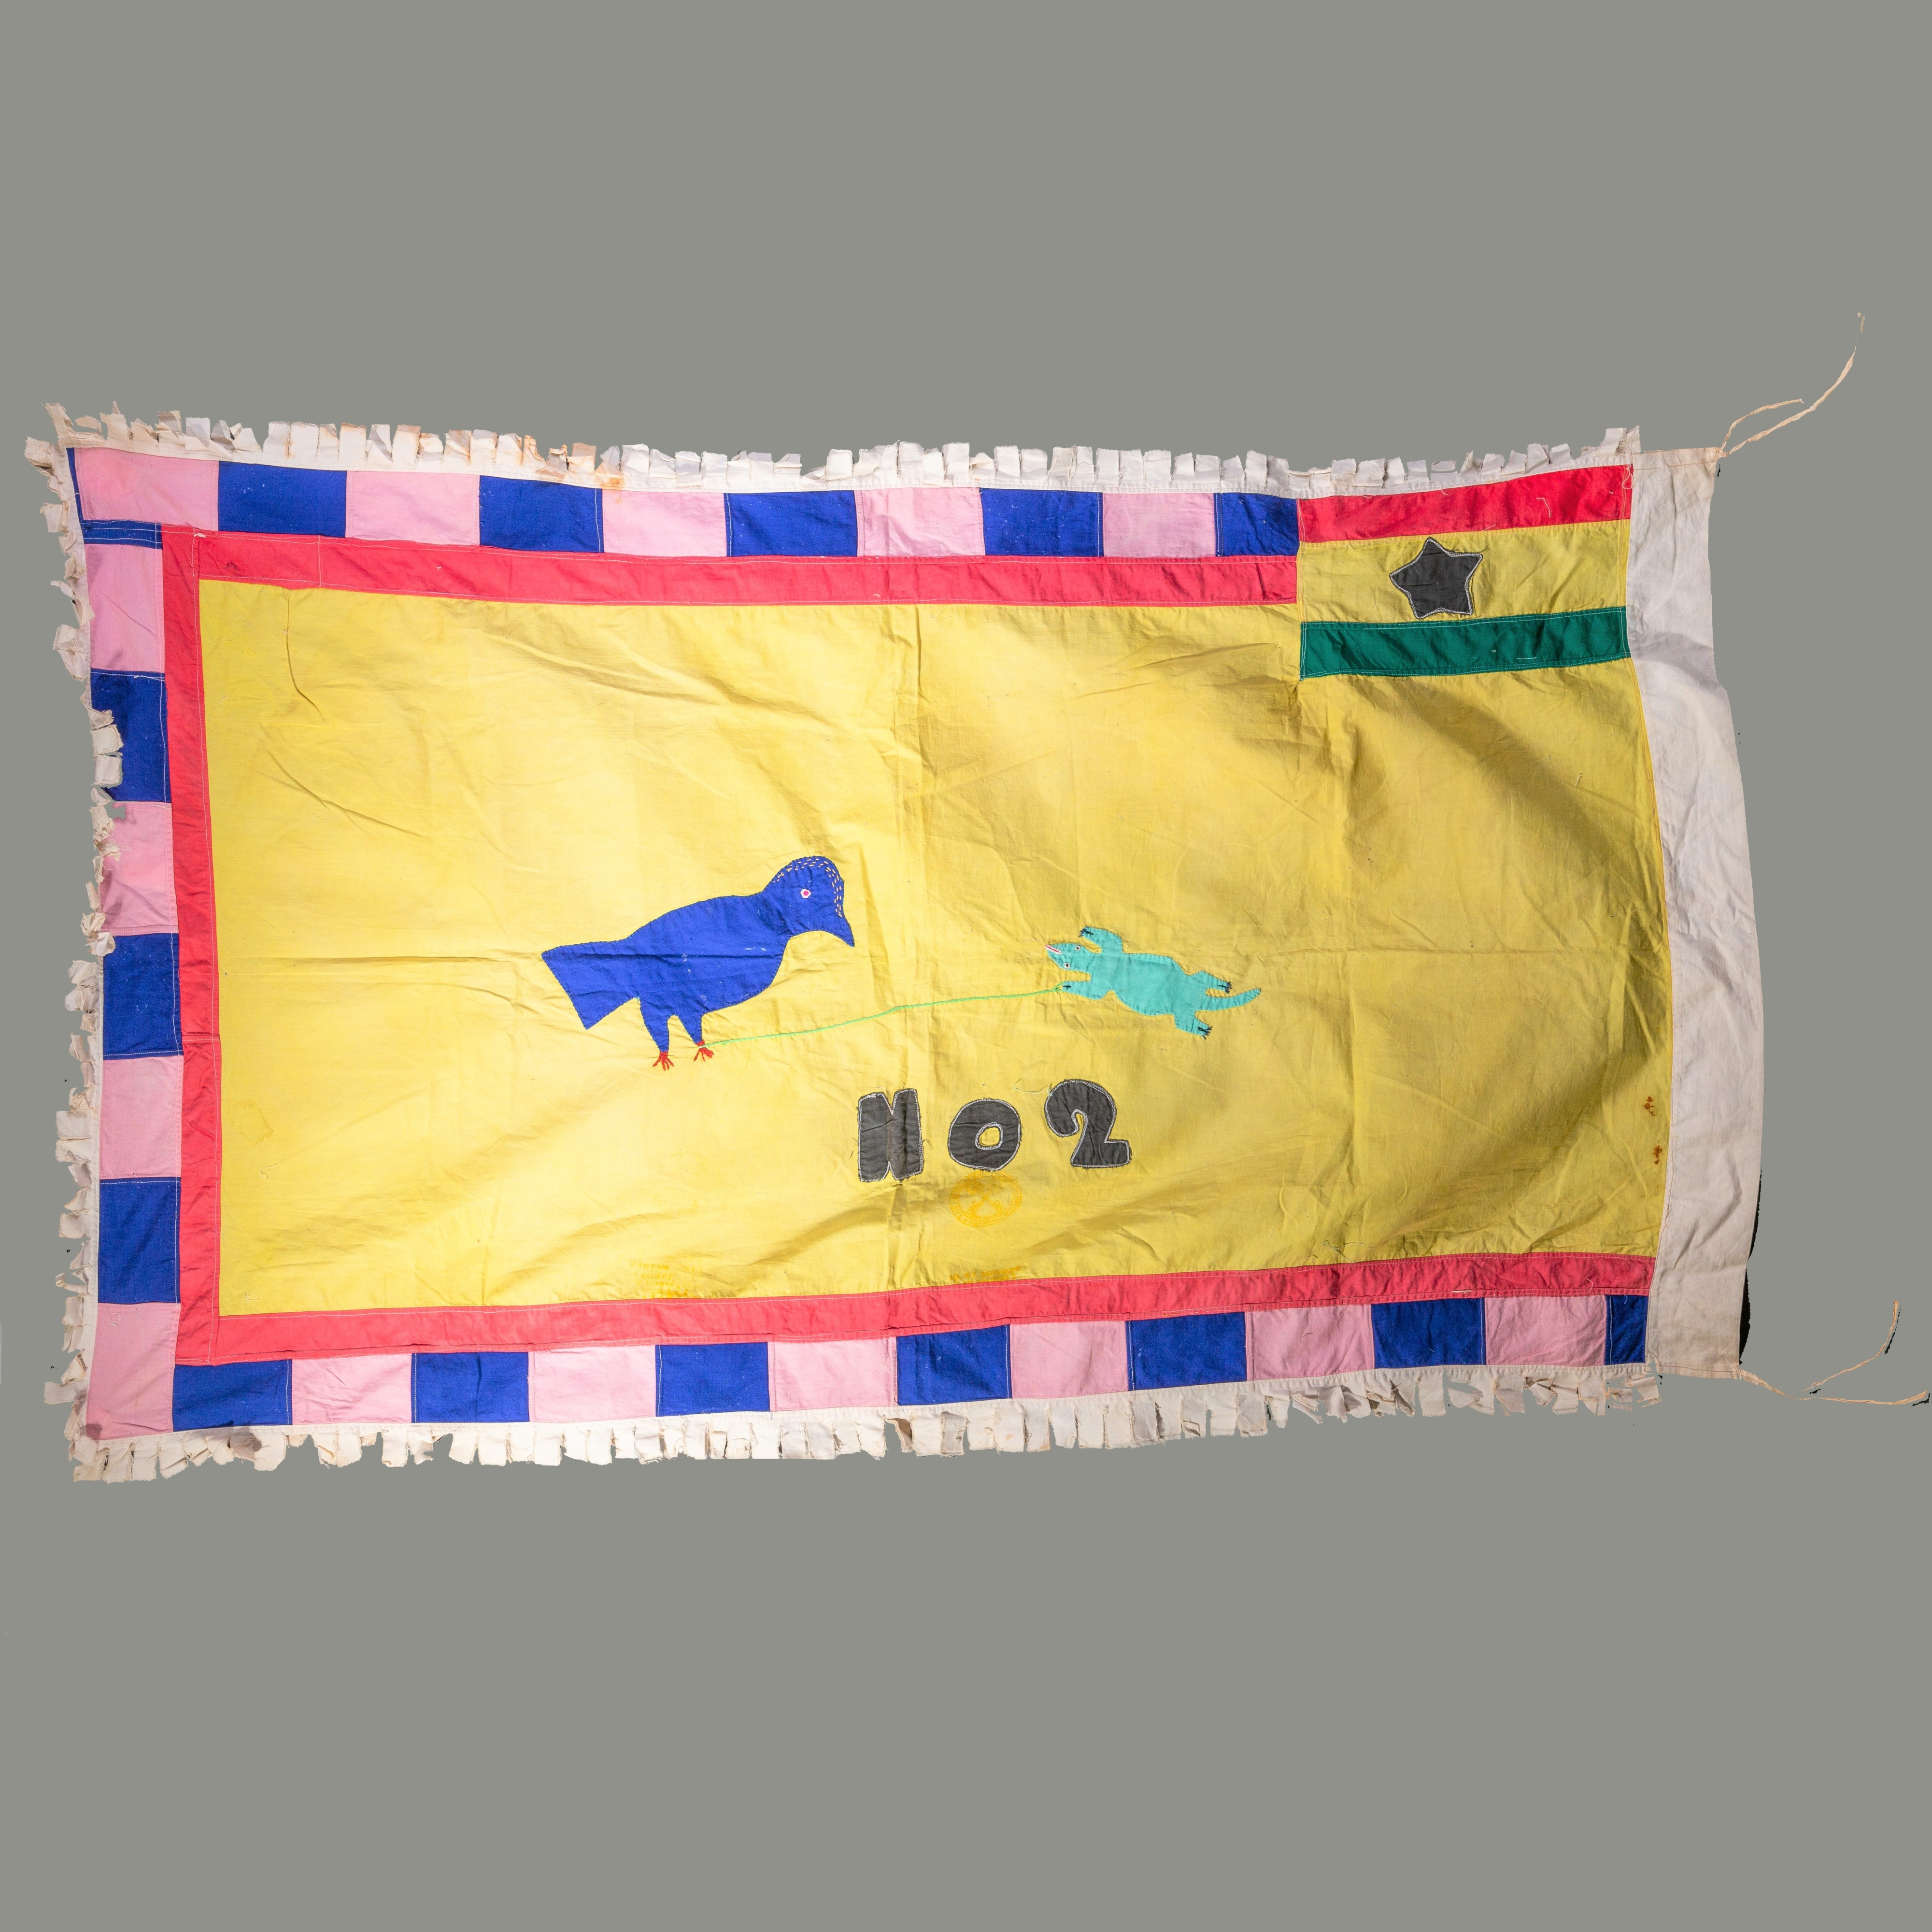 A POETIC FANTE FLAG WITH ANIMALS ( No 323 )